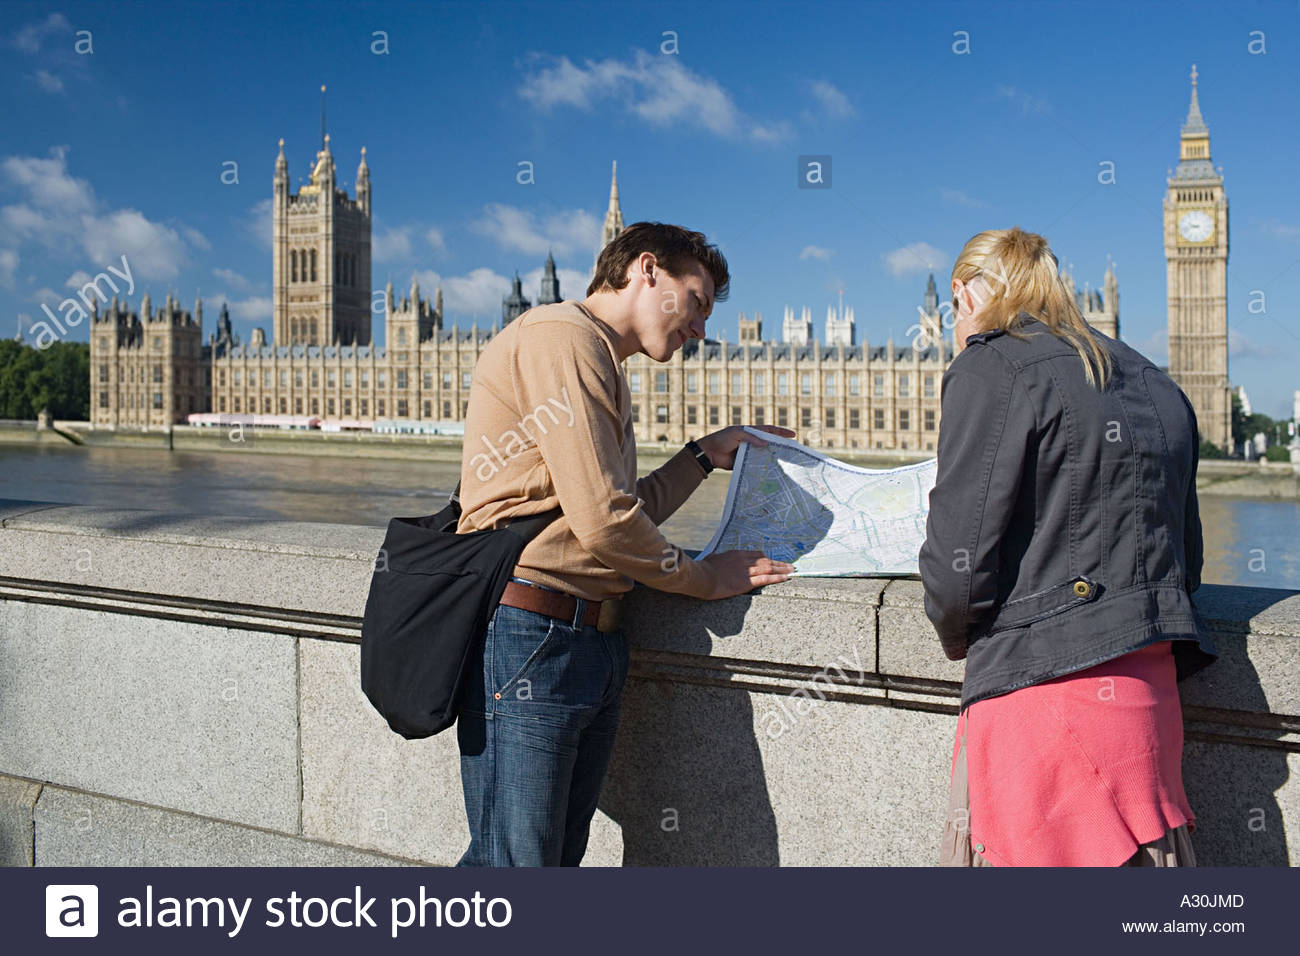 Couple standing near Houses of Parliament - Stock Image